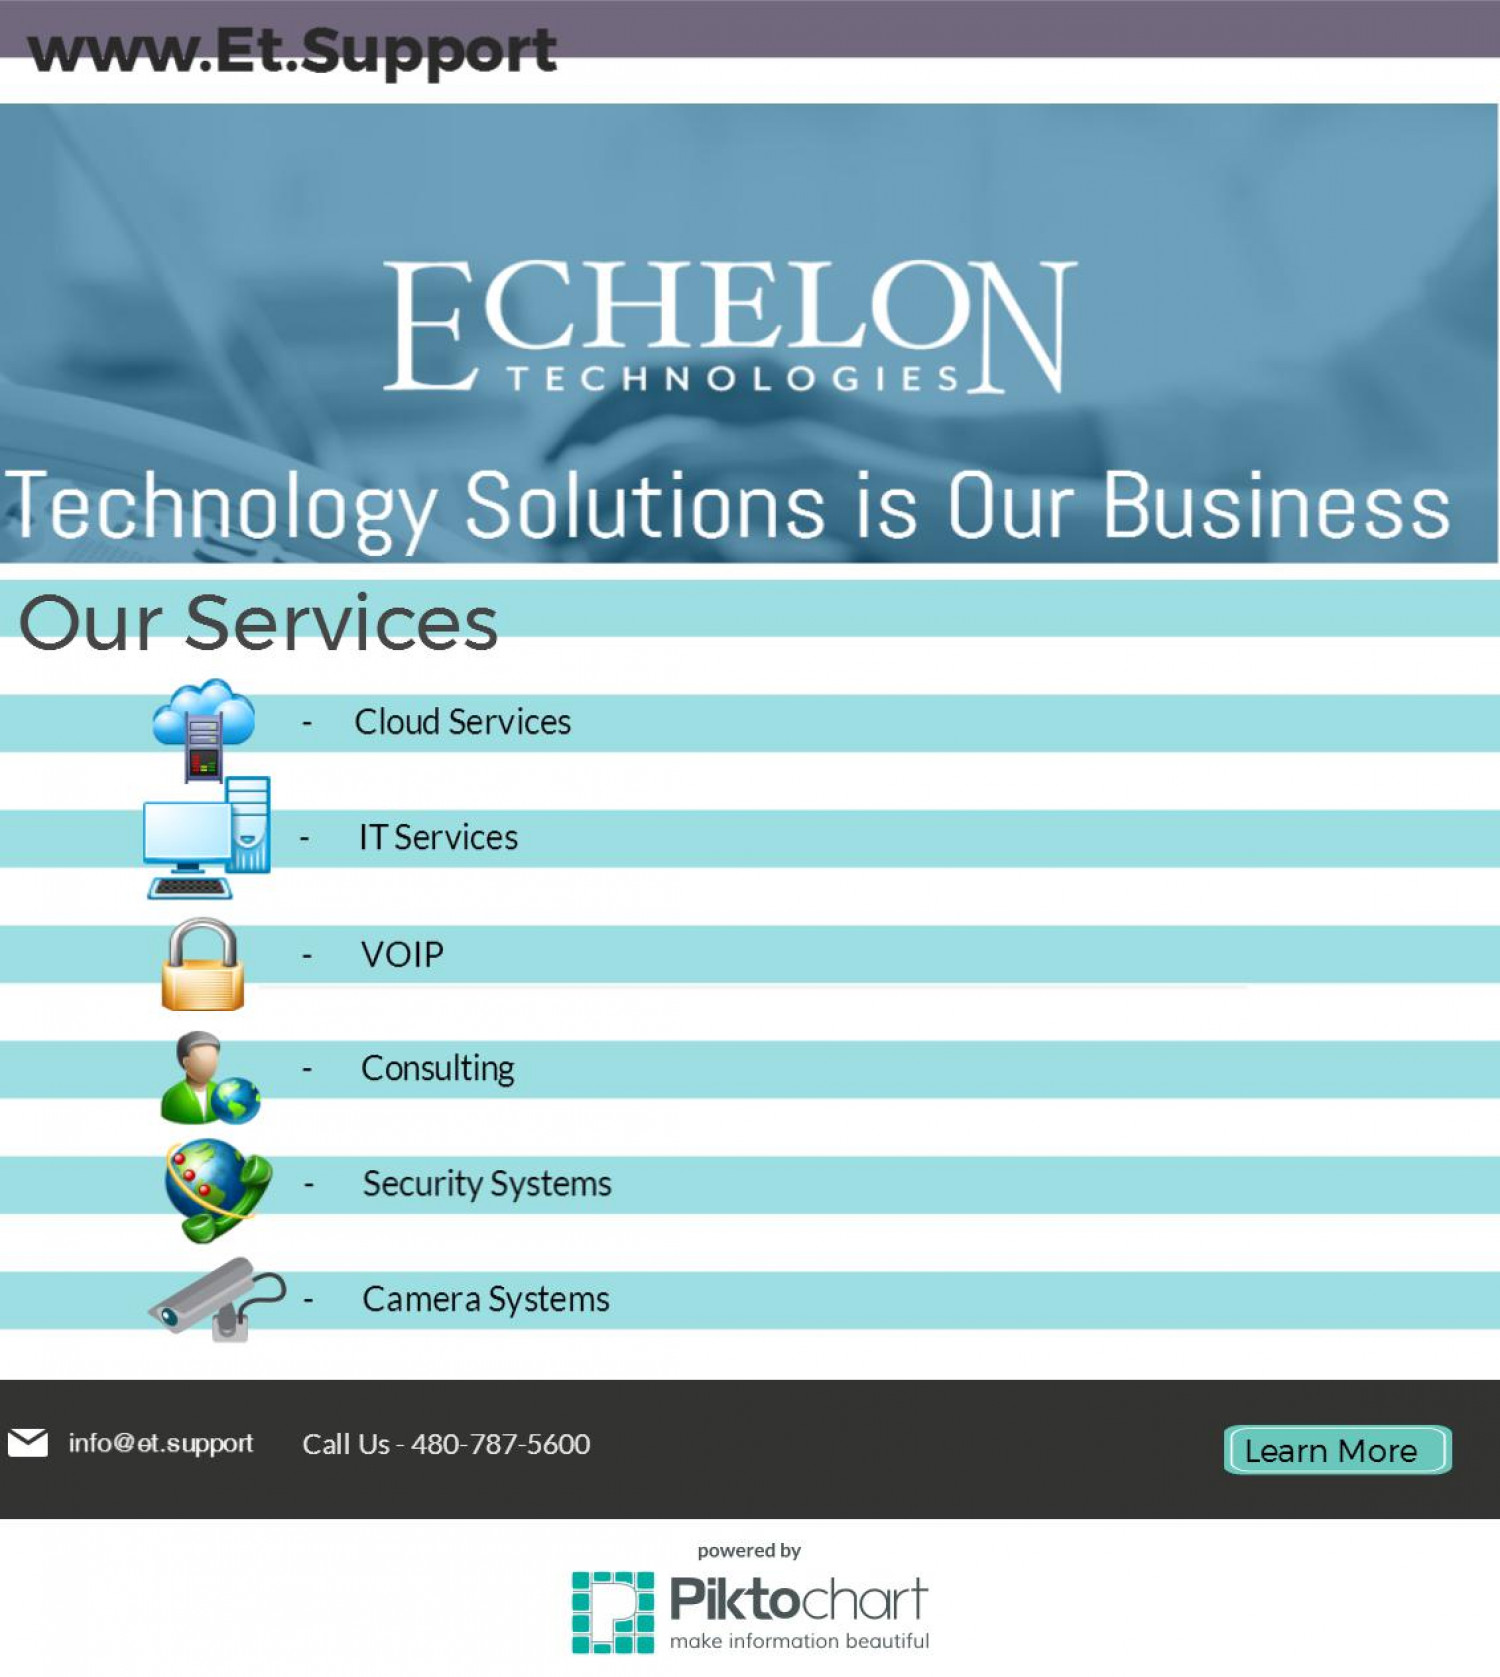 Echelon Technologies - Technology Solutions is Our Business Infographic